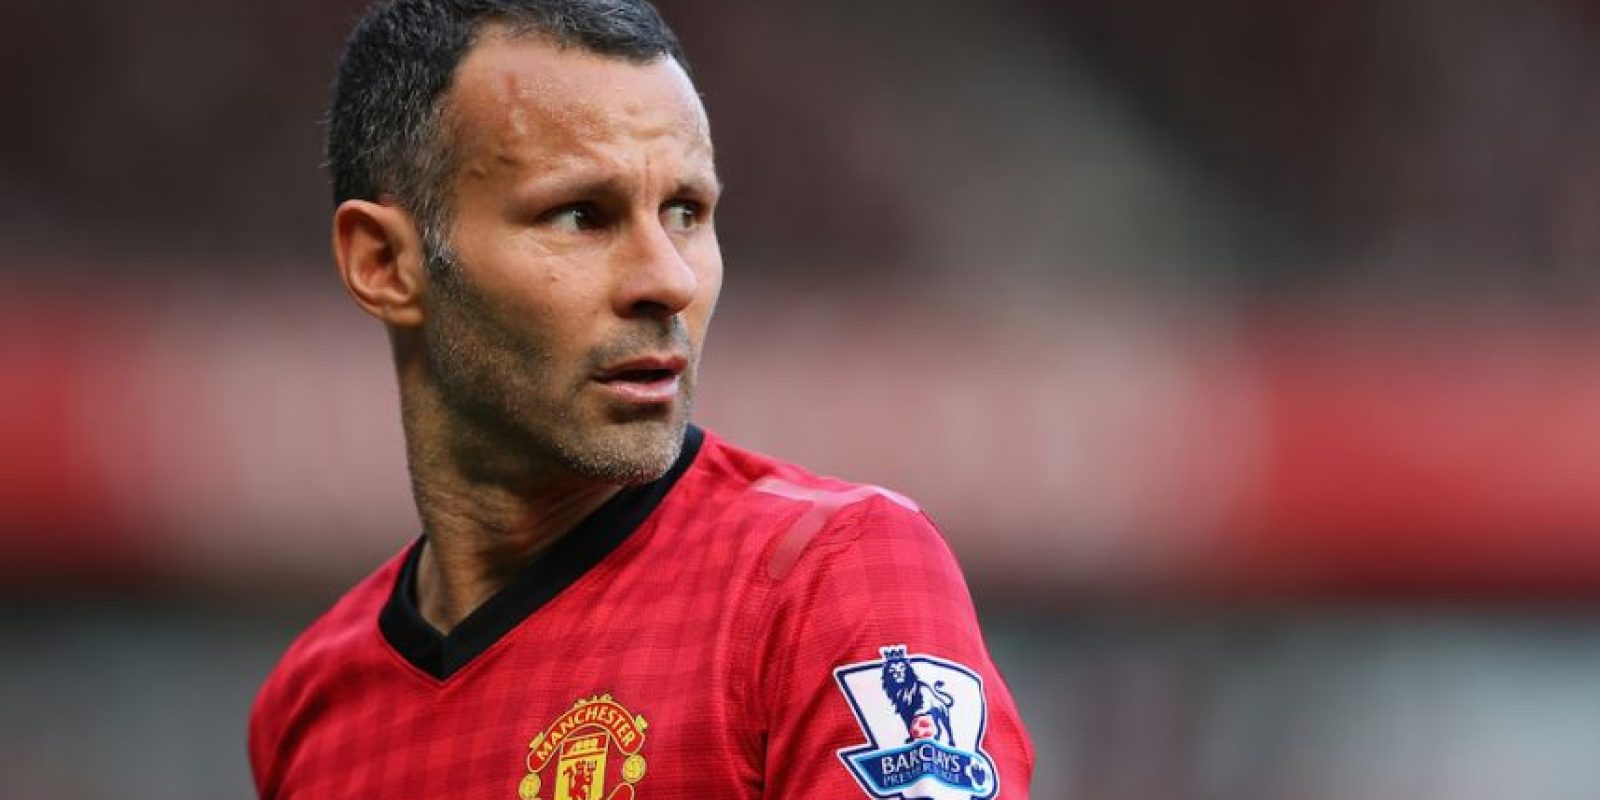 Ryan Giggs – Gales, Reino Unido. Foto: Getty Images